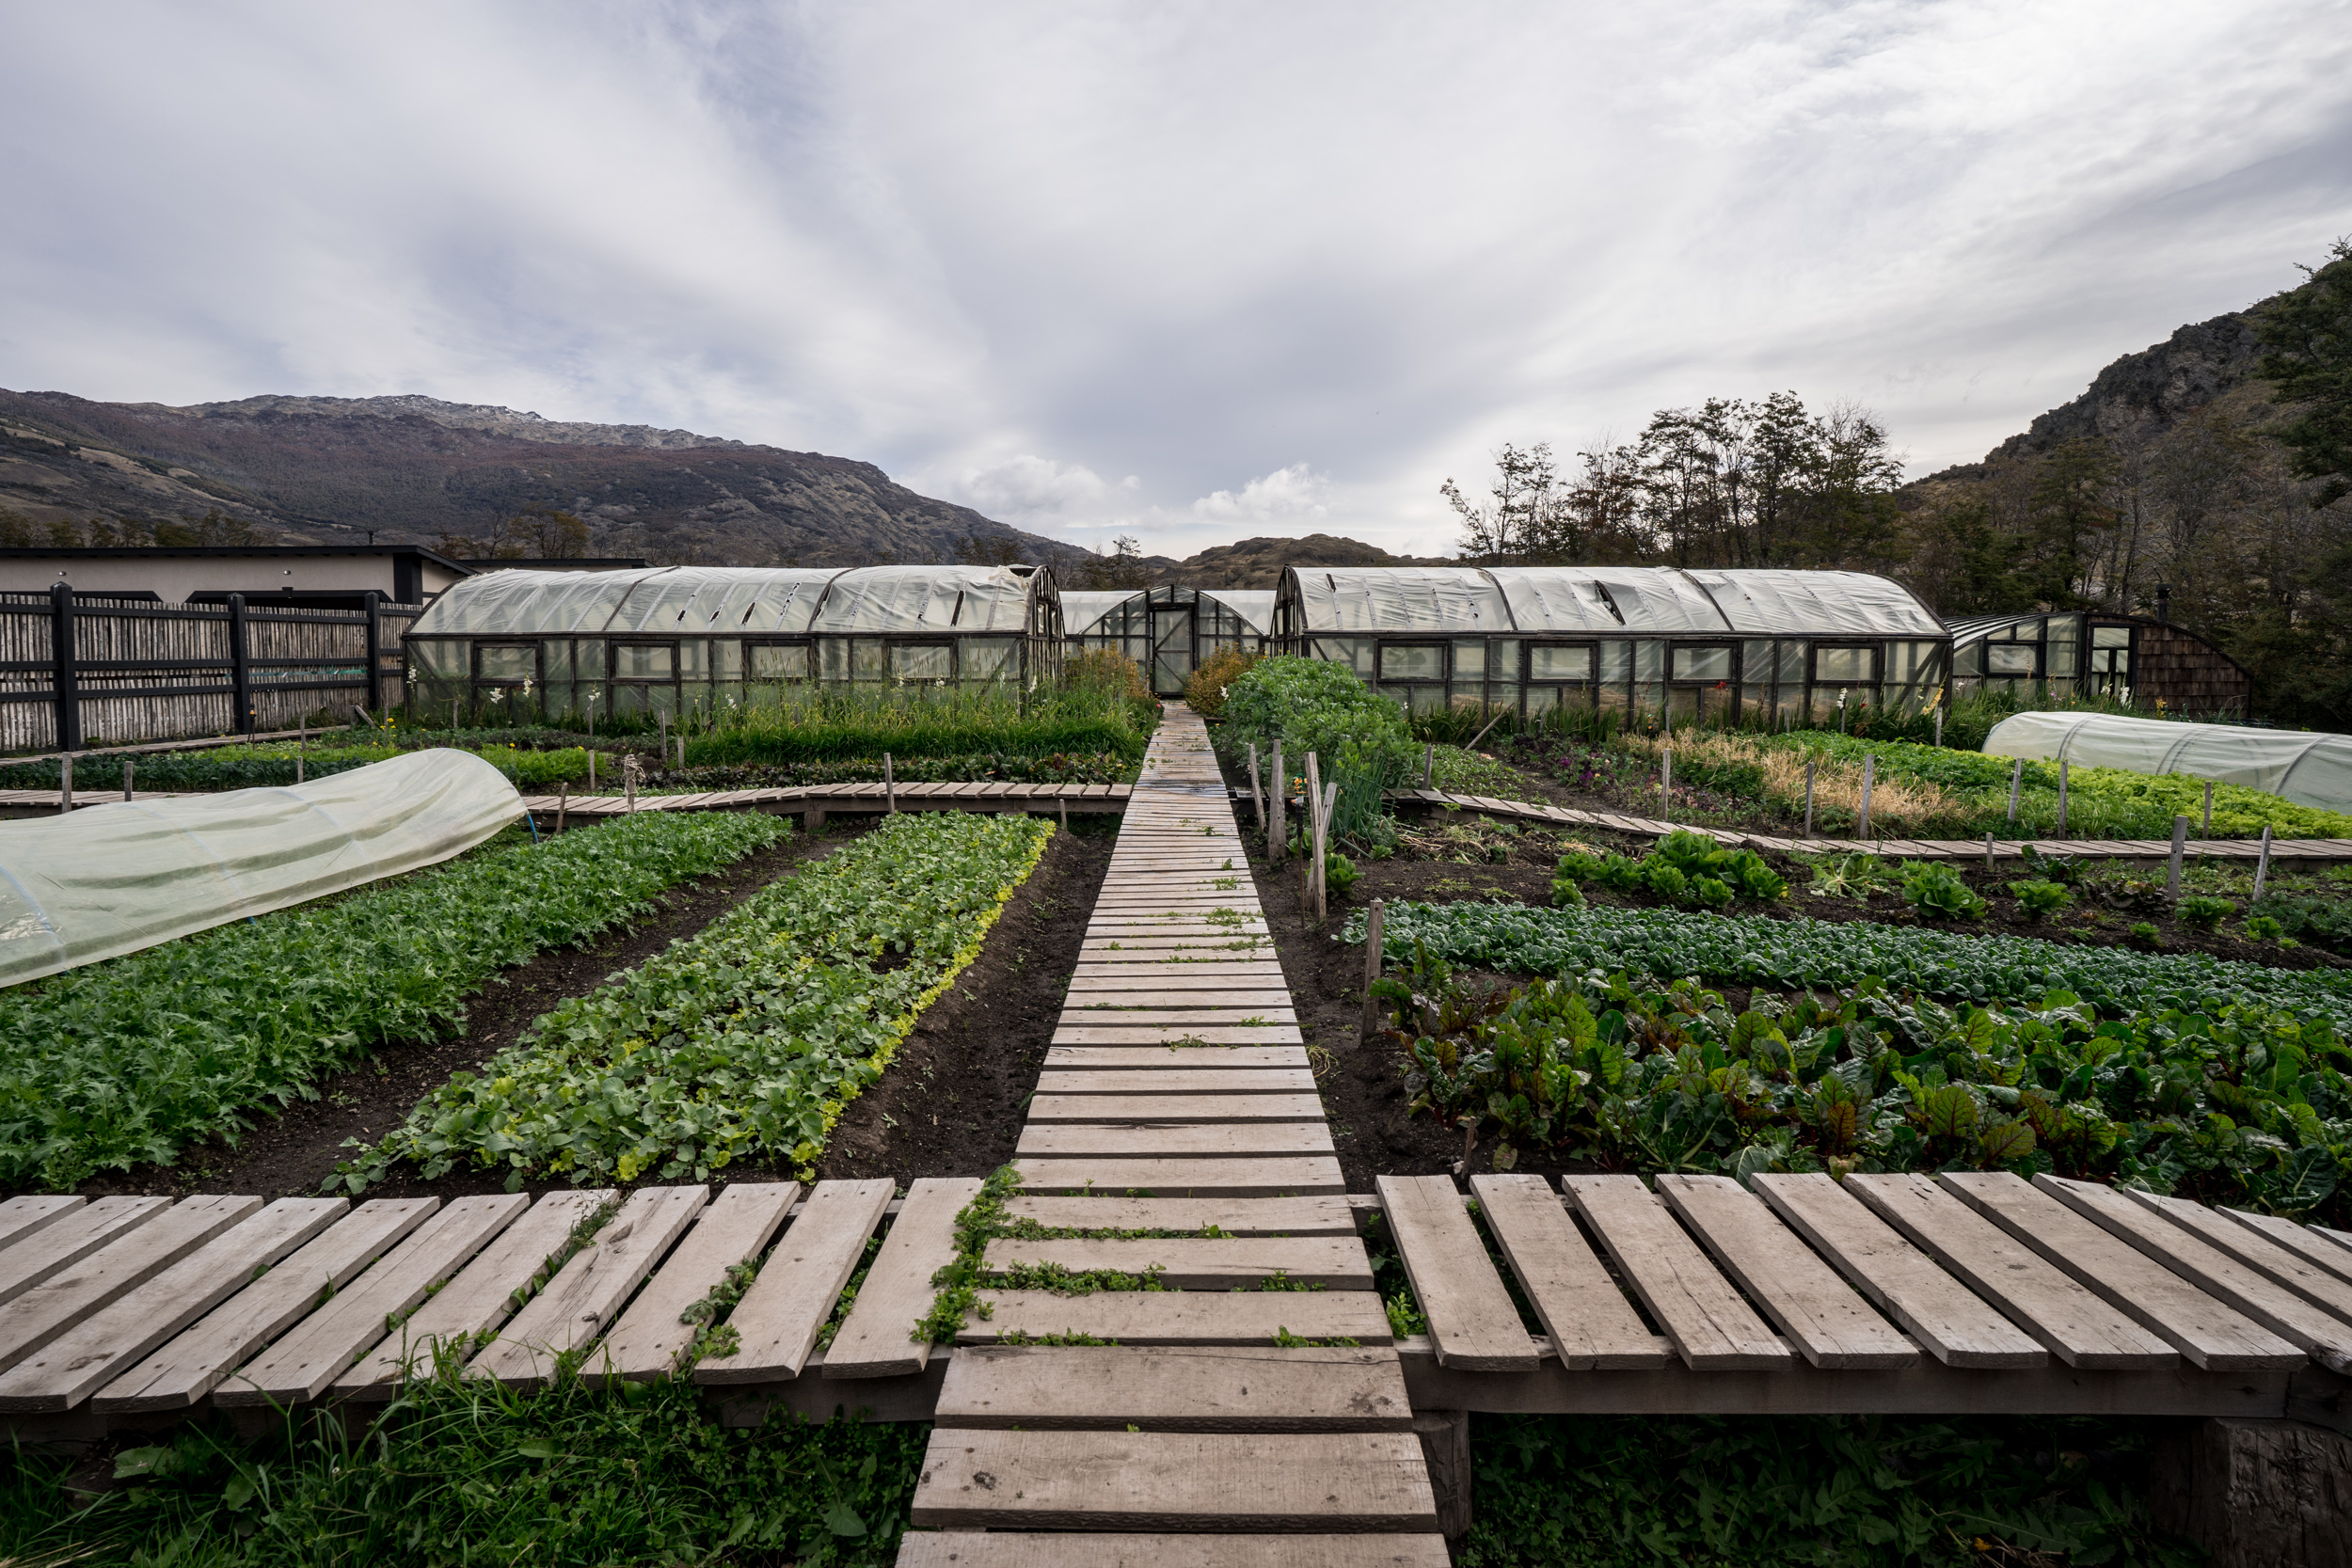 - In Valle Chacabuco the vegetable garden, or